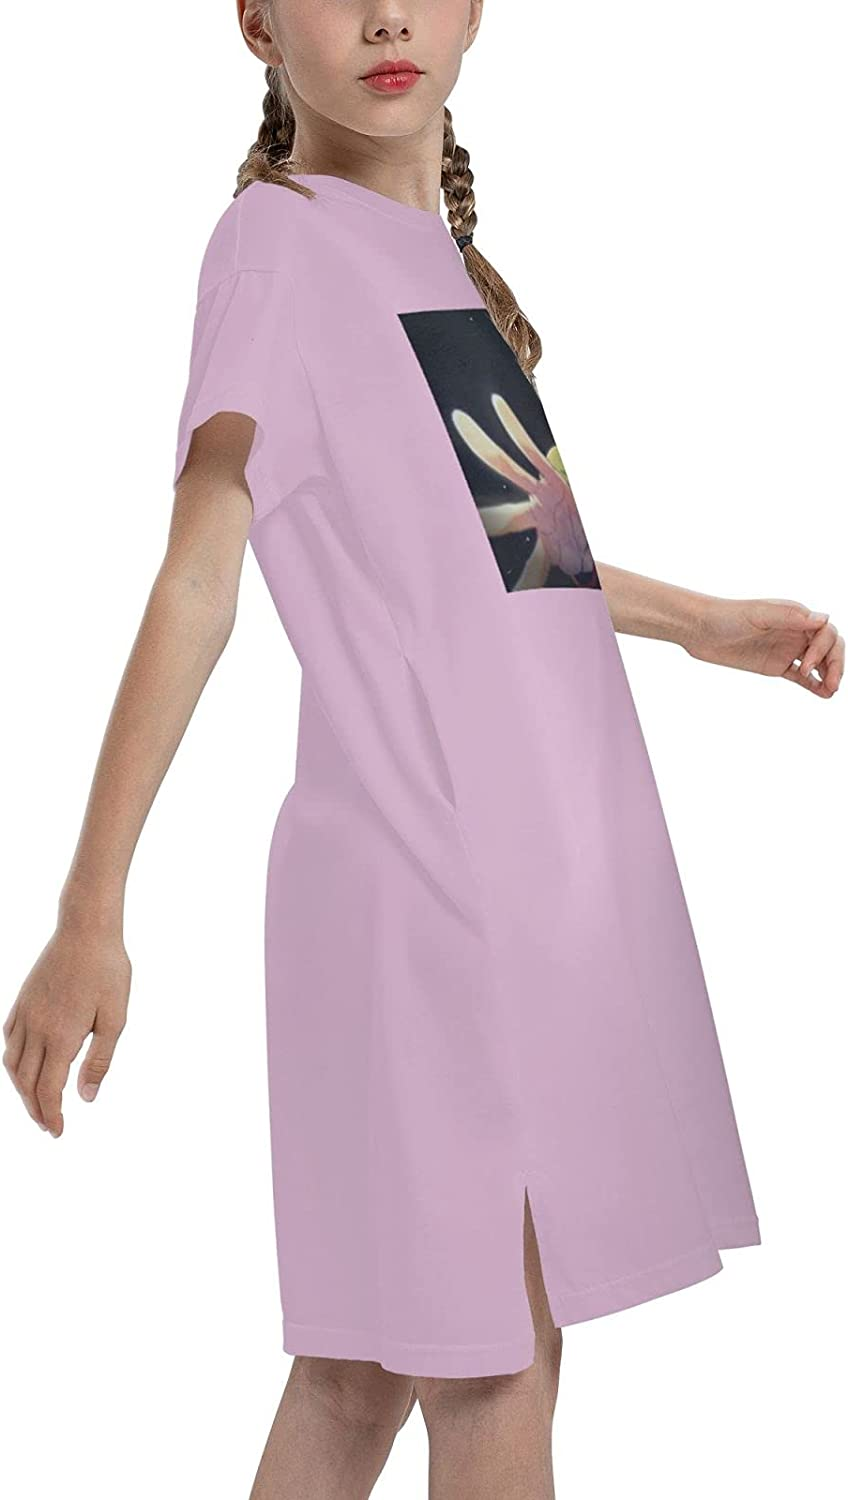 Hunter X Hunte Gon·Freecss Girls Short Sleeve Dress Casual Swing Twirl Skirt for Holiday Theme Party 7-12 Years